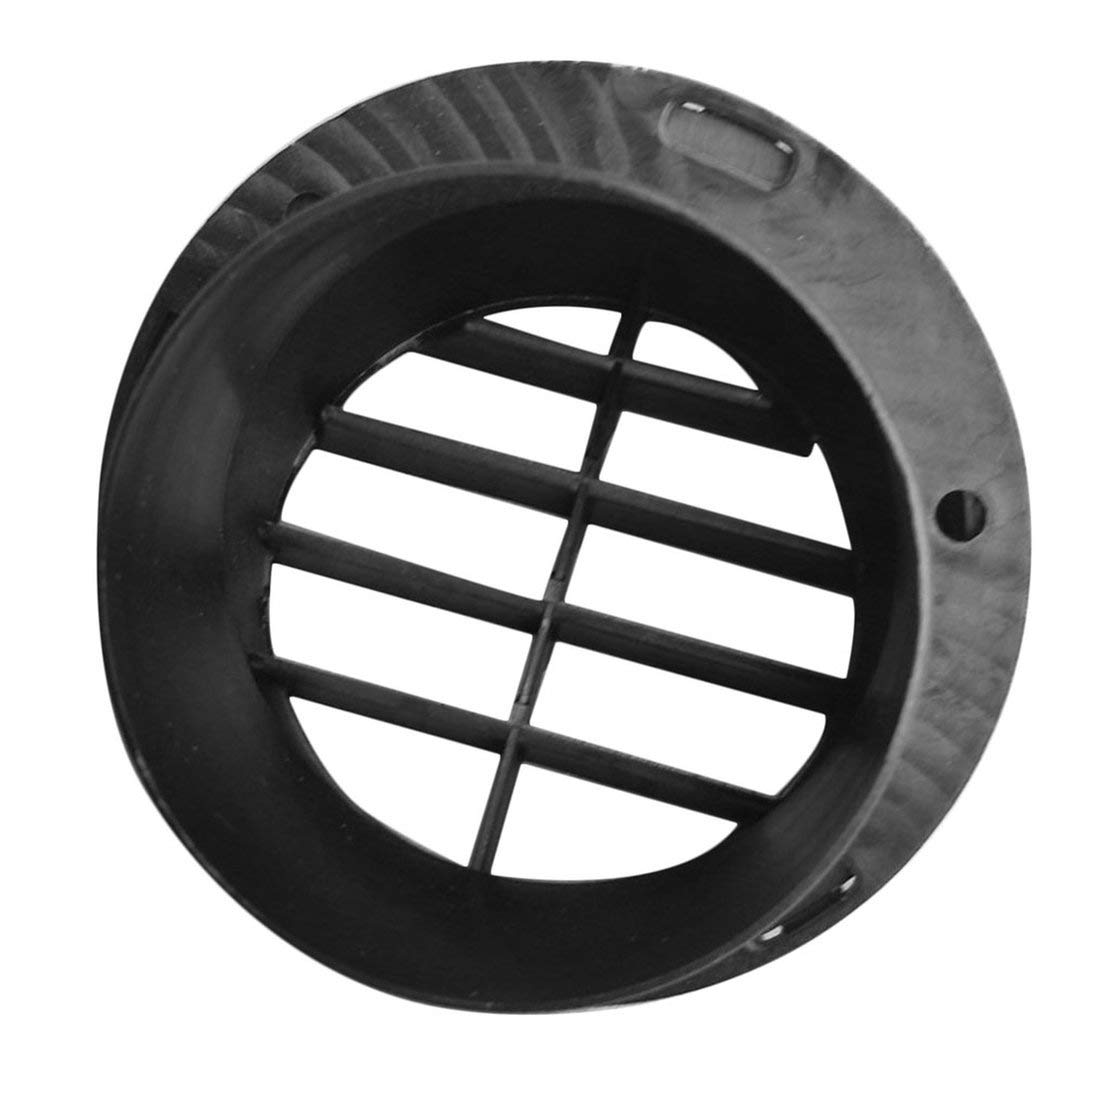 Baynne 60mm Warm Heater Parking Heater Air Vent Car Heater Air Outlet Directional Rotatable for Webasto Truck Auto Parts